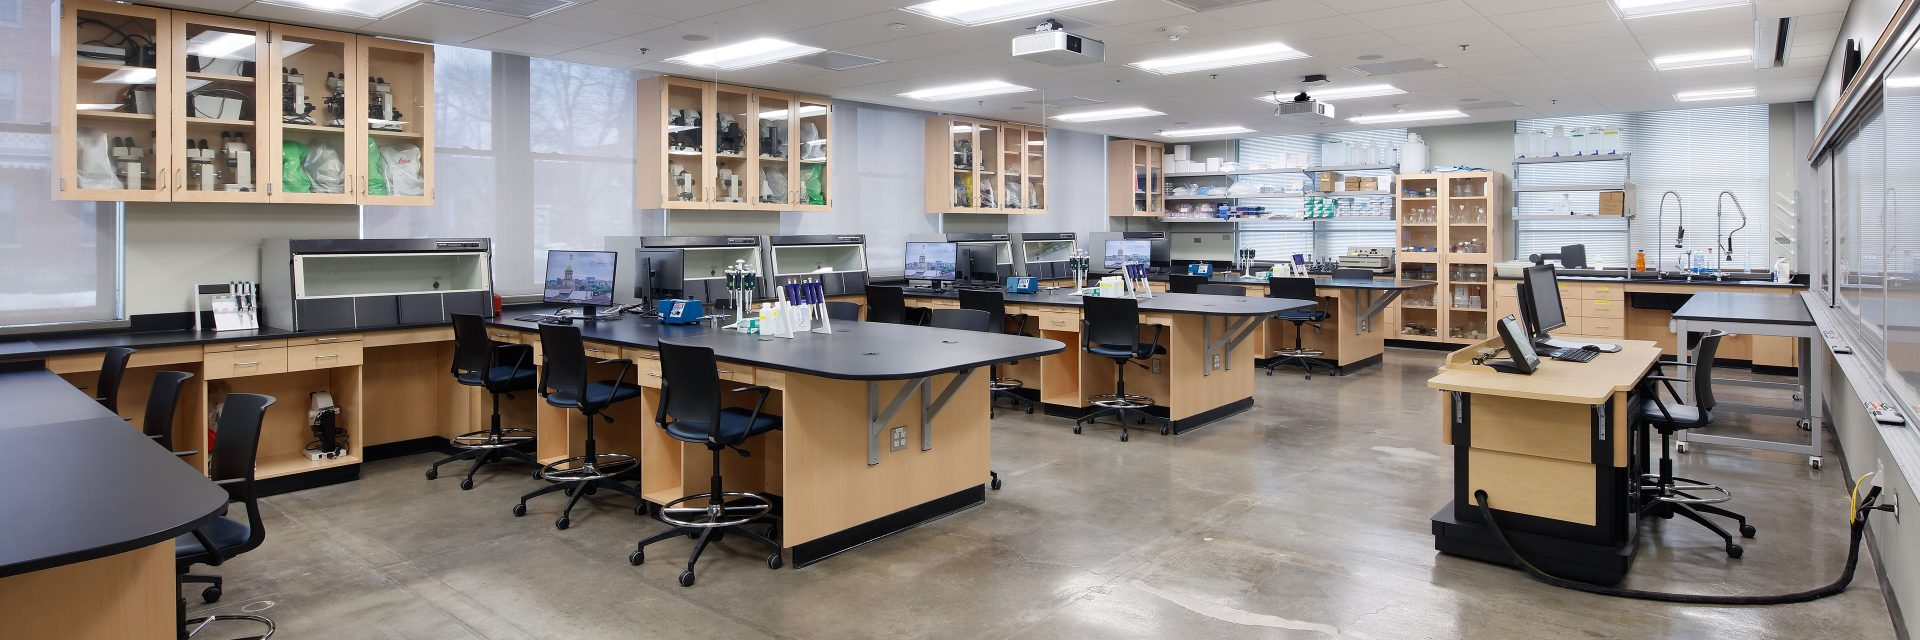 Biology Lab Renovation Planning